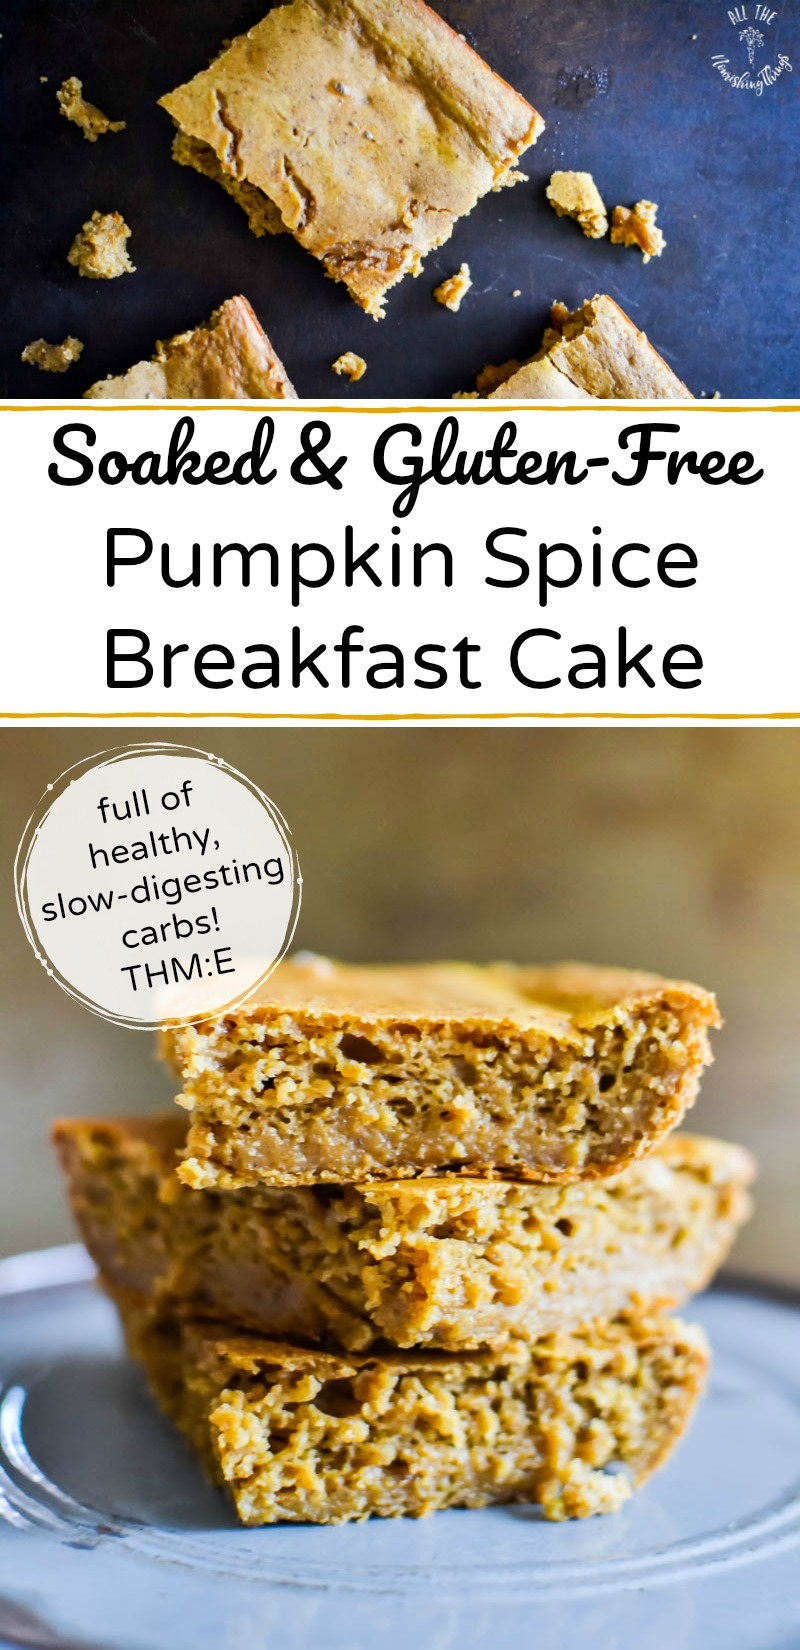 soaked gluten-free pumpkin spice breakfast cake with text overlay